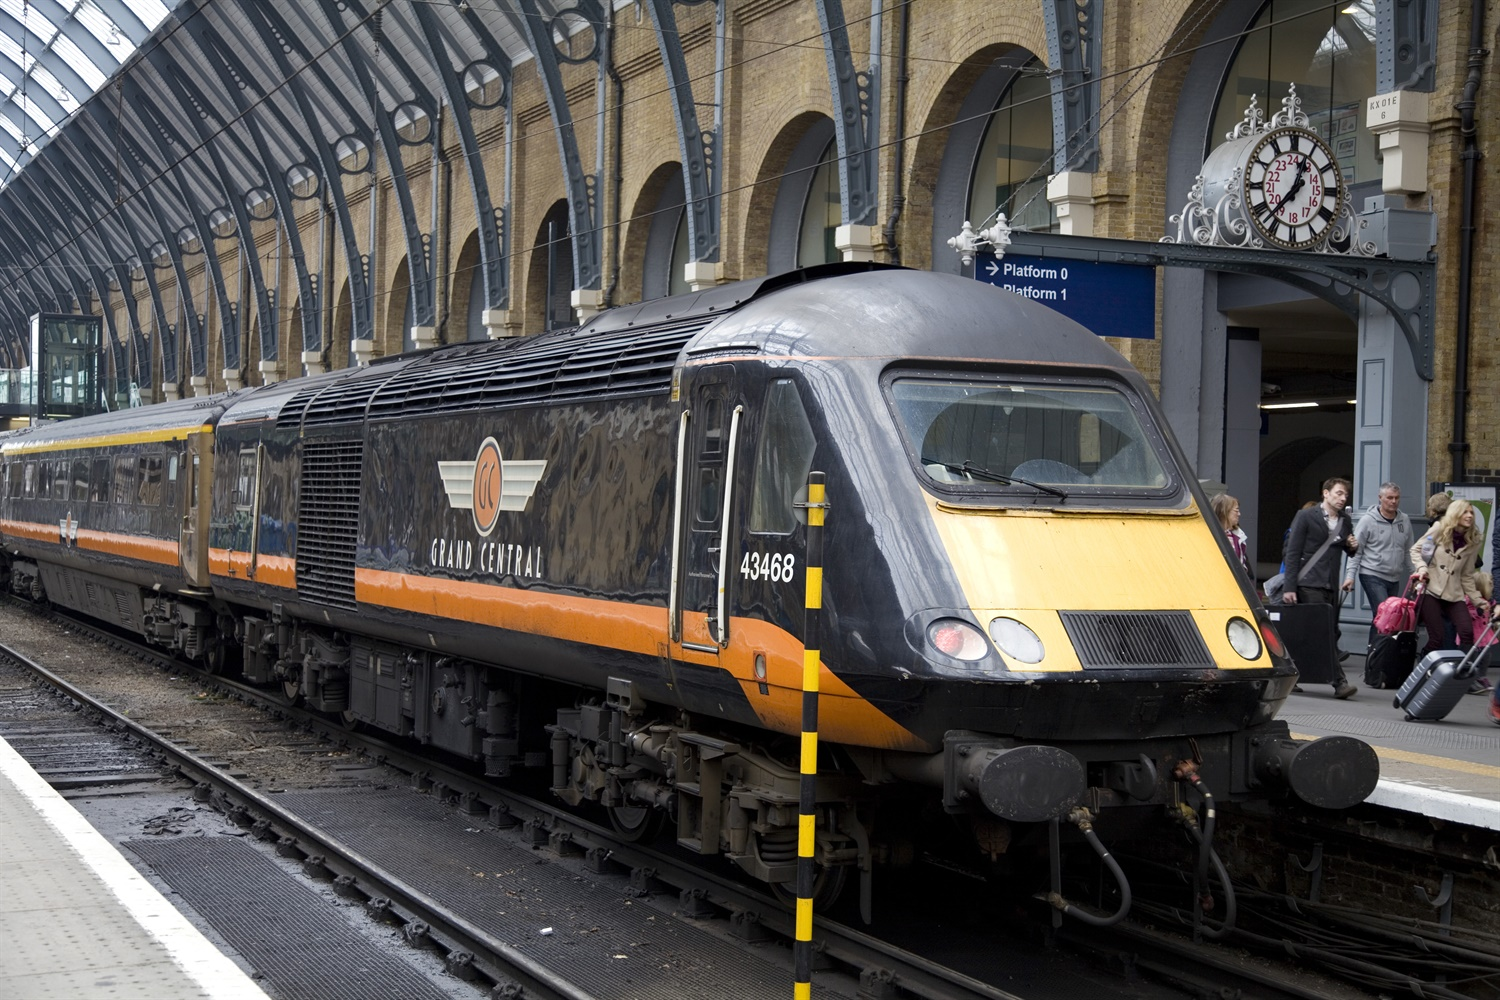 Grand Central completes £9m refurbishment of rolling stock